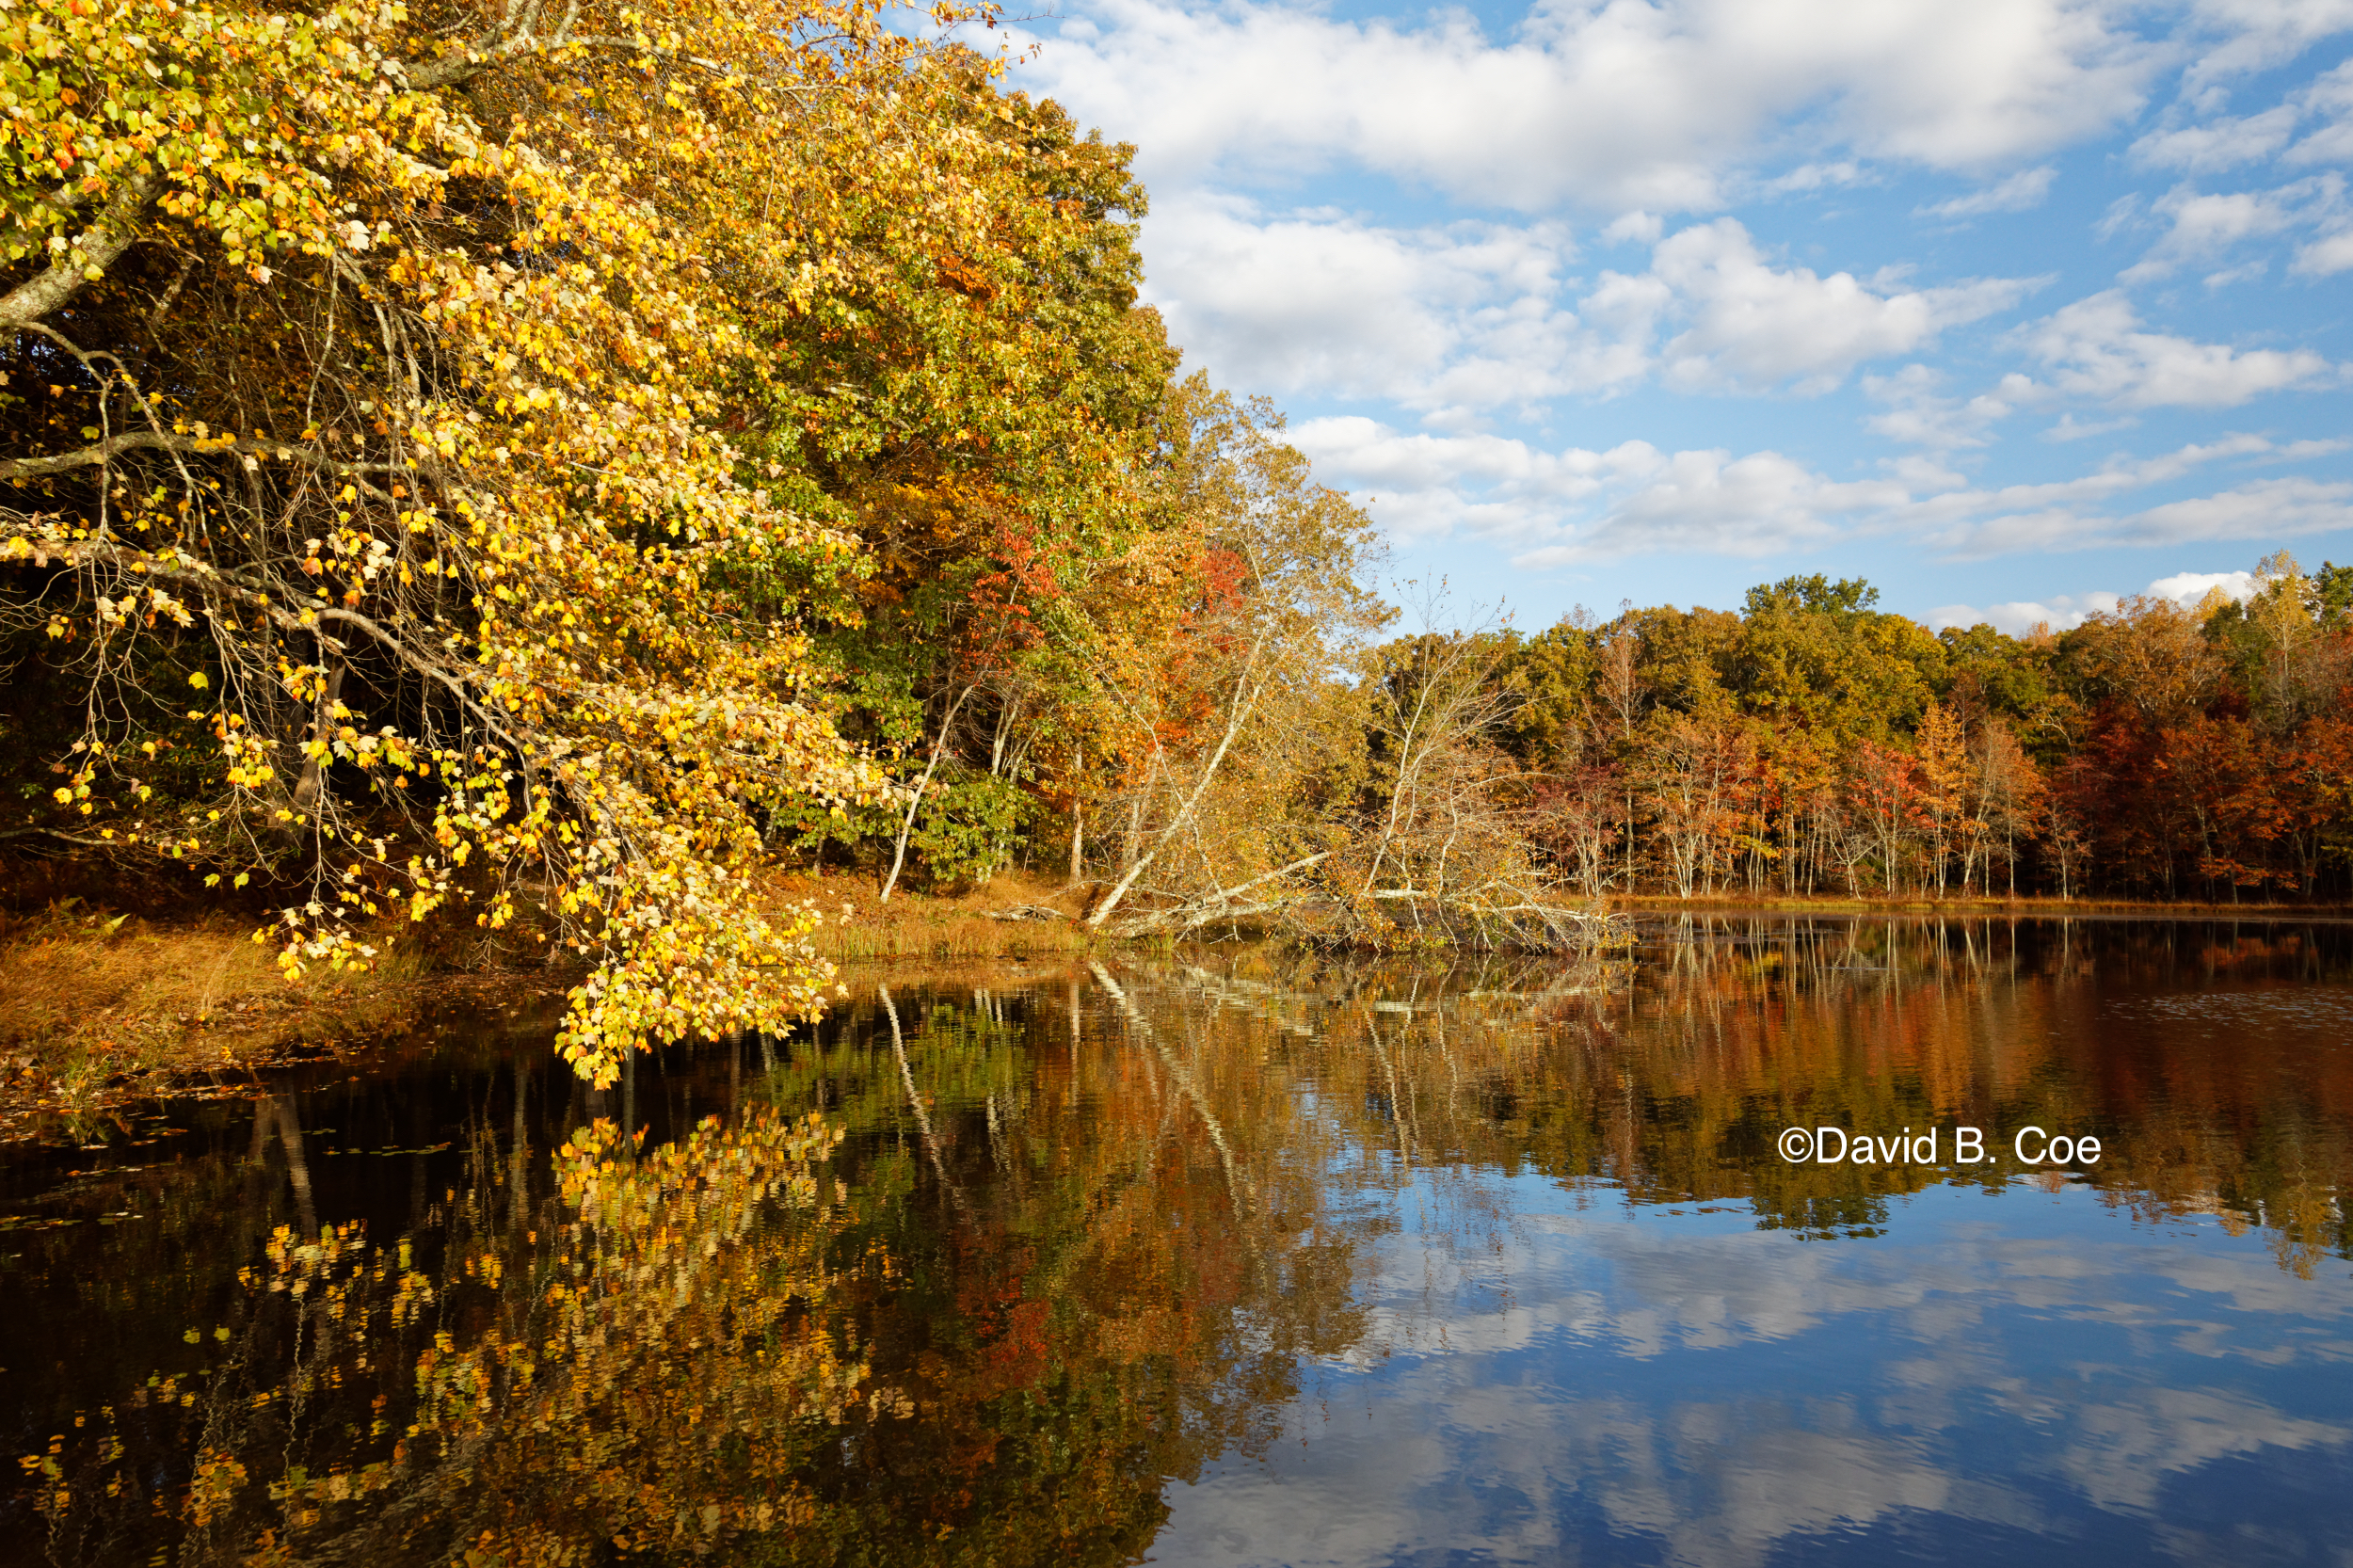 Foliage Reflections, Lake Dimmick, by David B. Coe